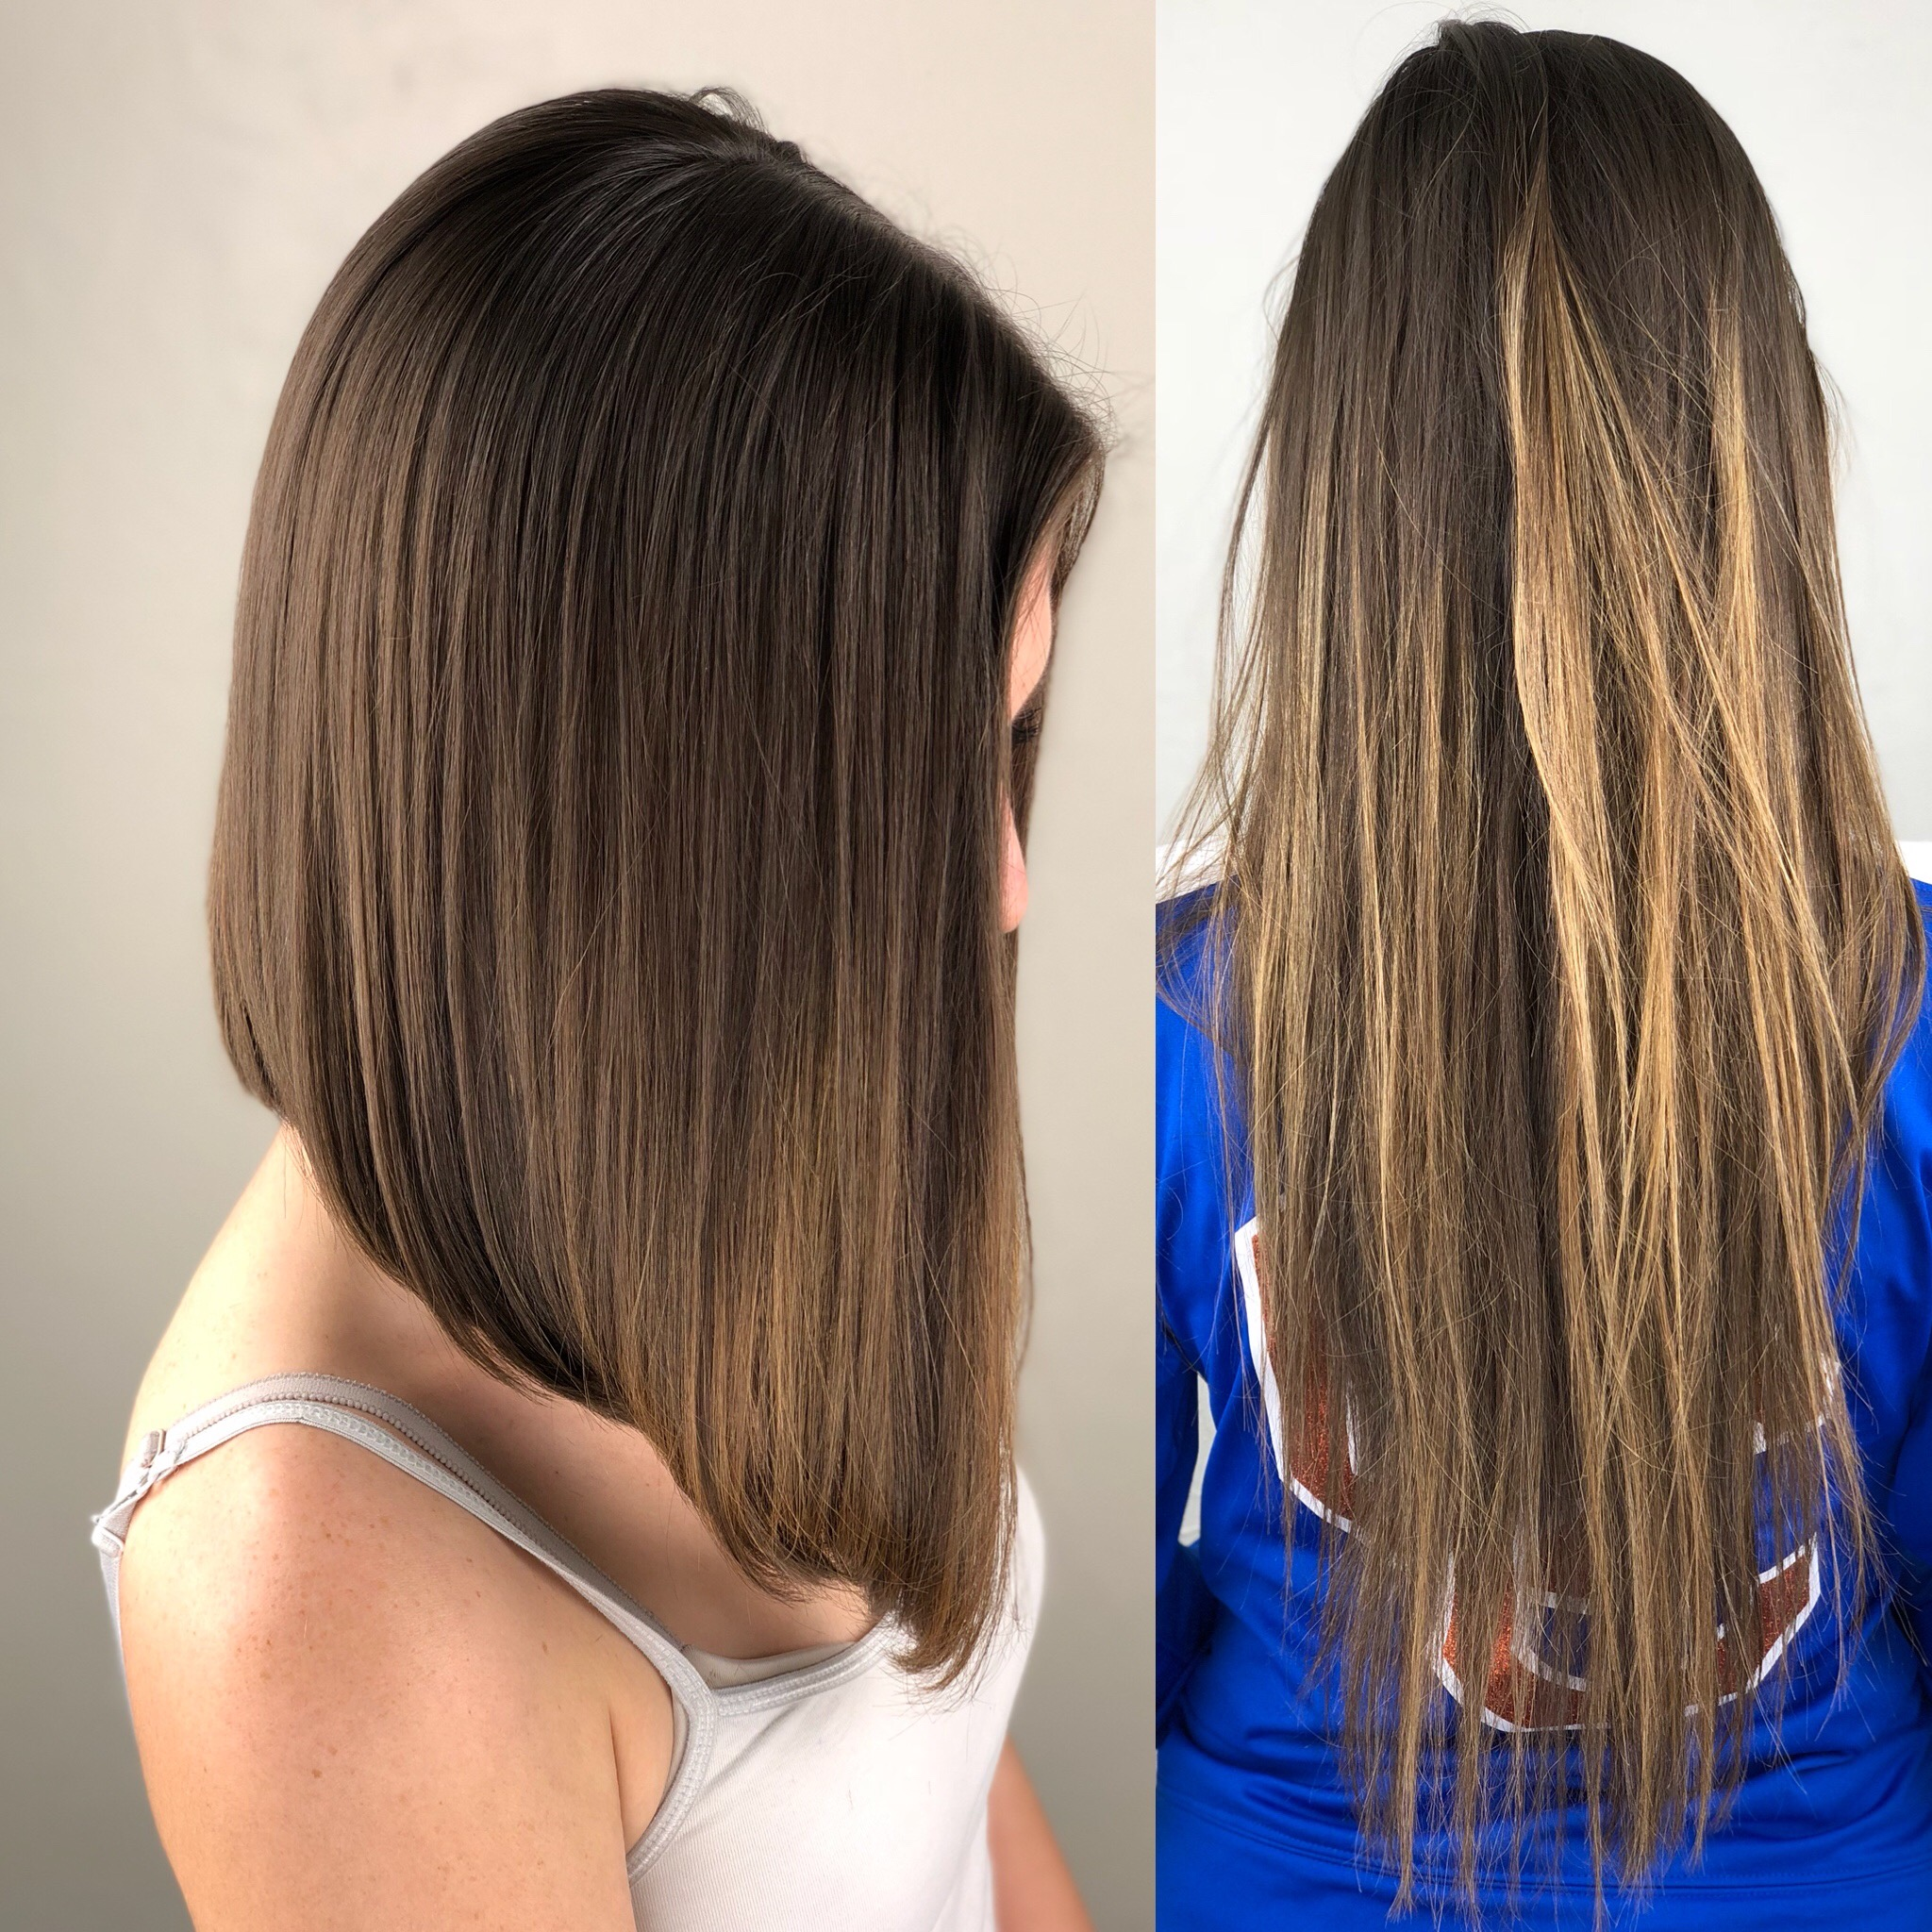 Long bob before and after